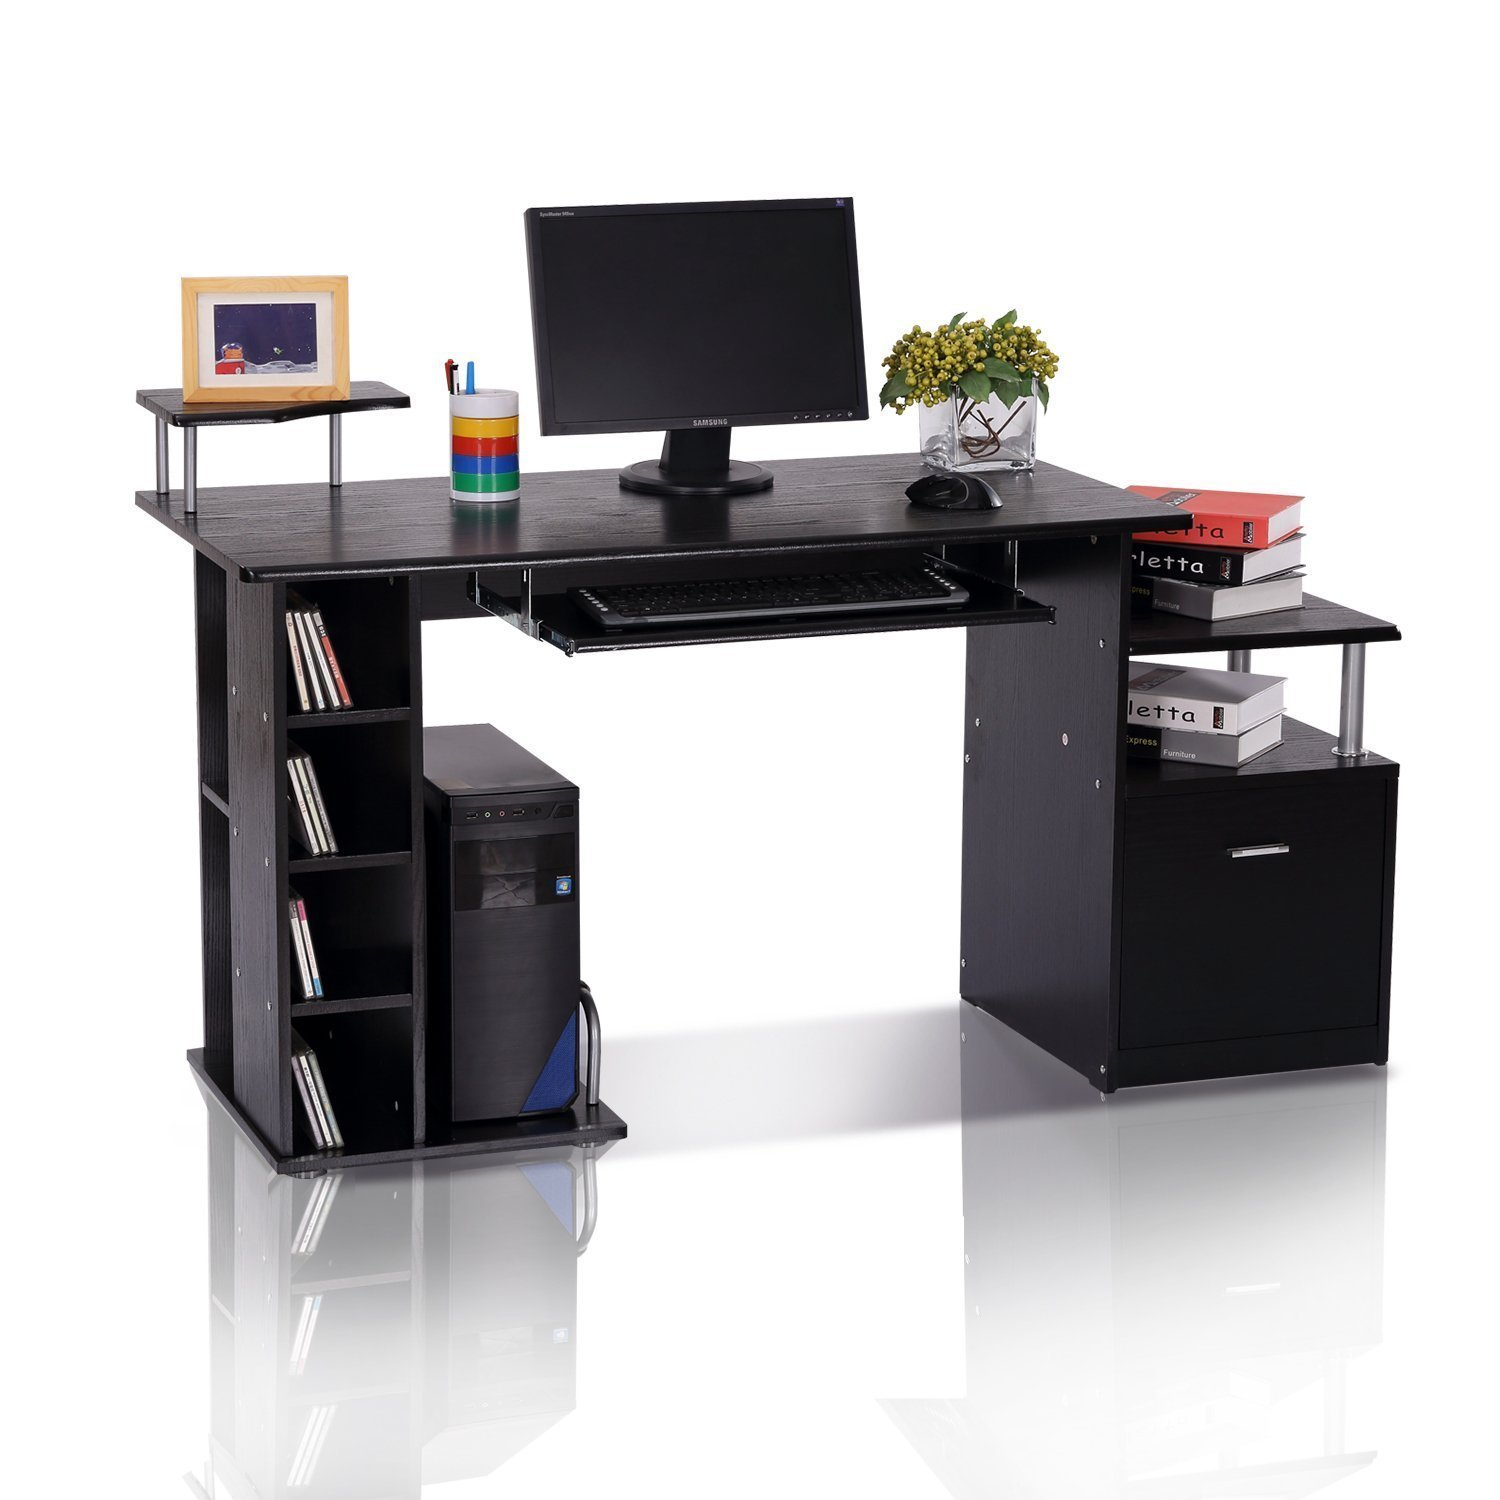 HOMCOM Wood Computer Desk Table Laptop Workstation with Storage Shelf Drawer Office Home Black MHCanada CA920-0130231